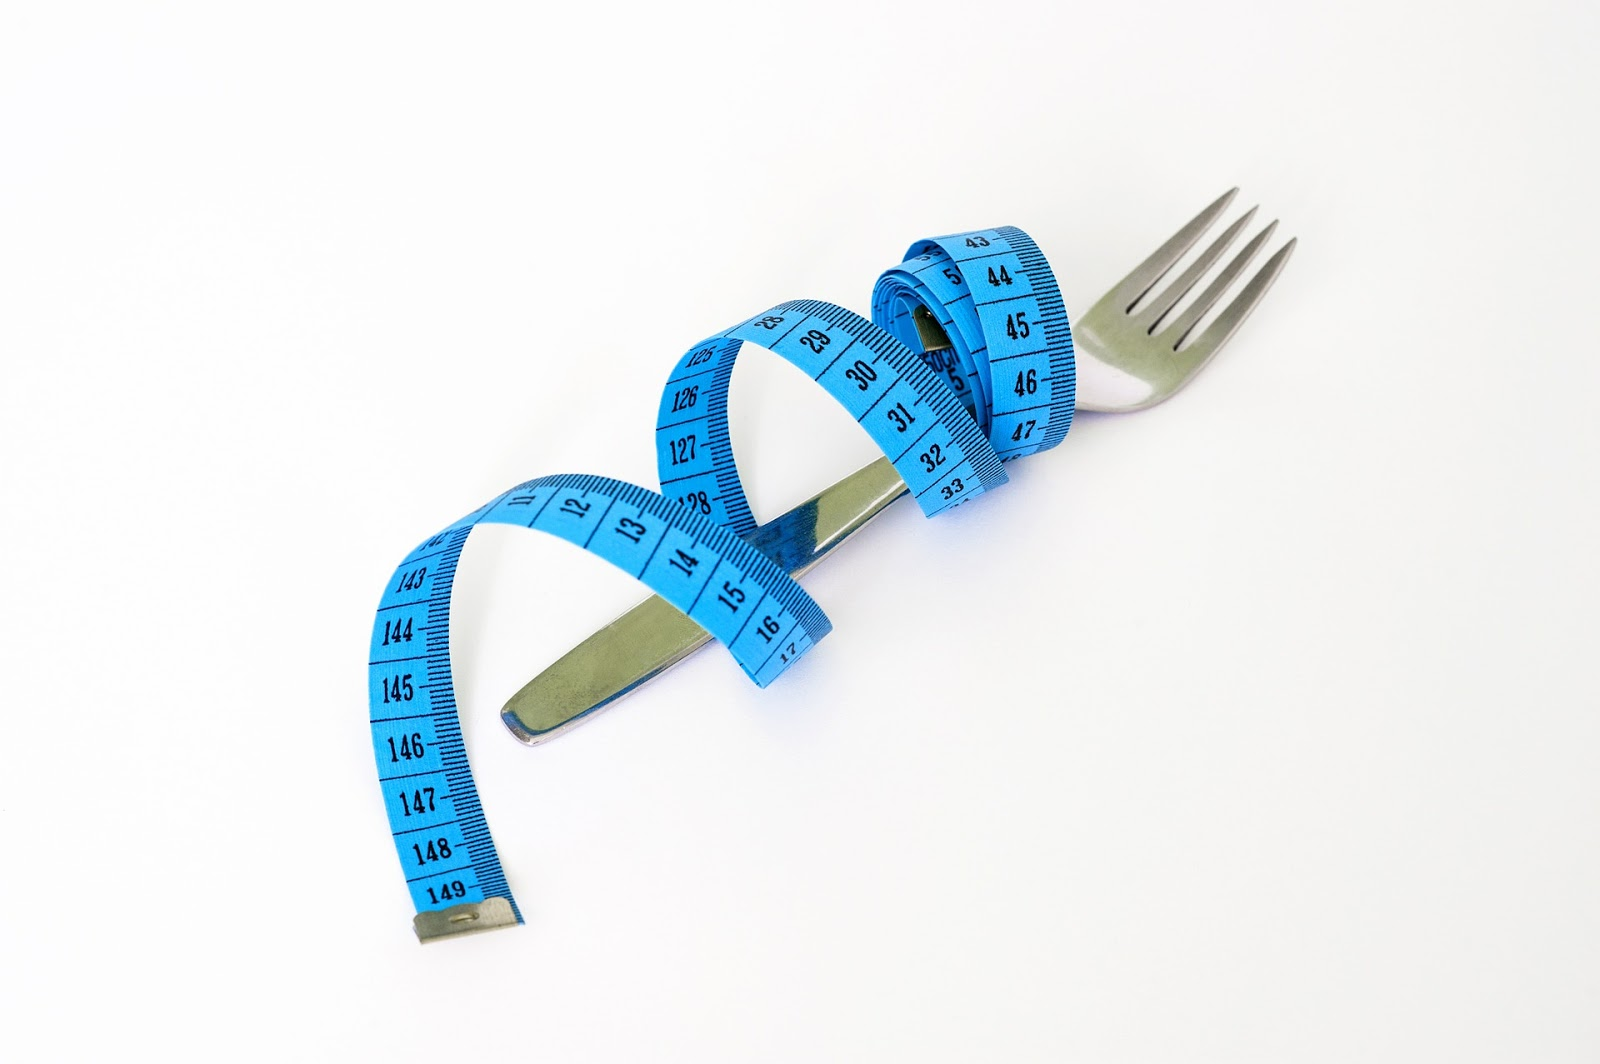 18 Tips To Lose Weight - www.mumisfit.com - weight loss tips, food and nutrition, healthy eating